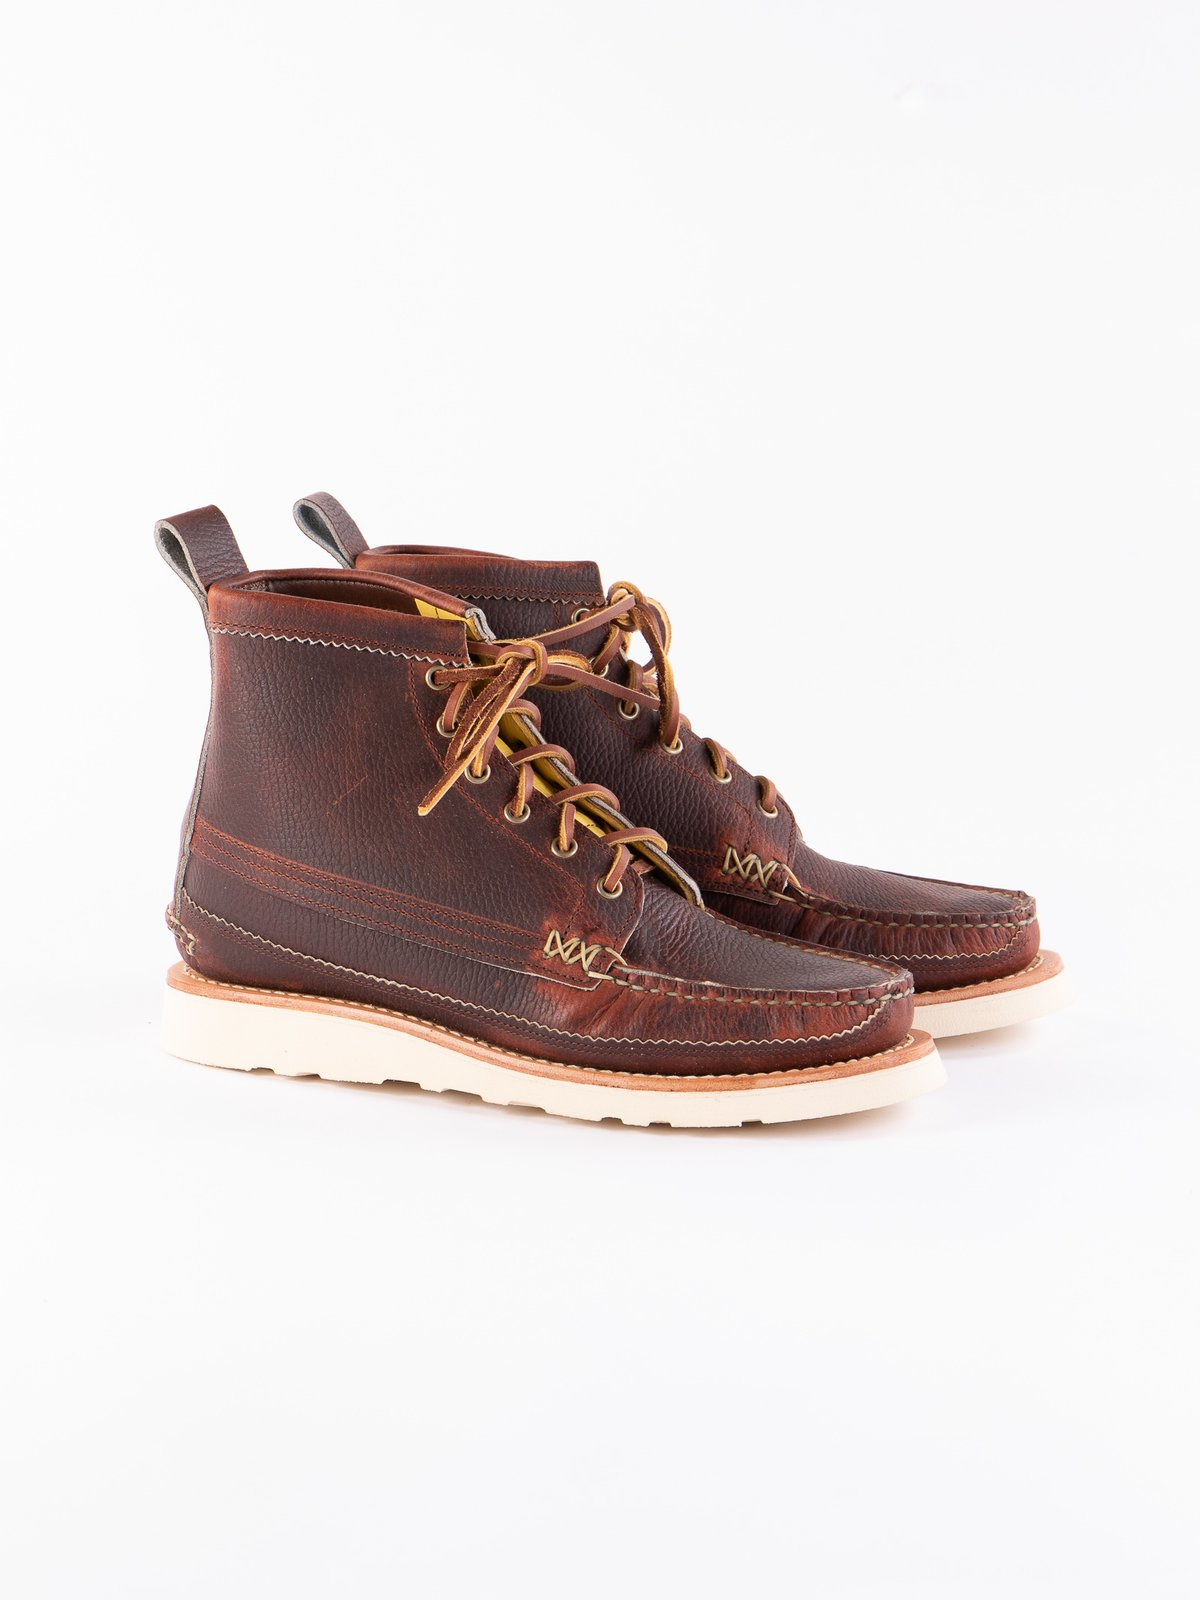 CP Brown Maine Guide 6 Eye DB Boot Exclusive - Image 1